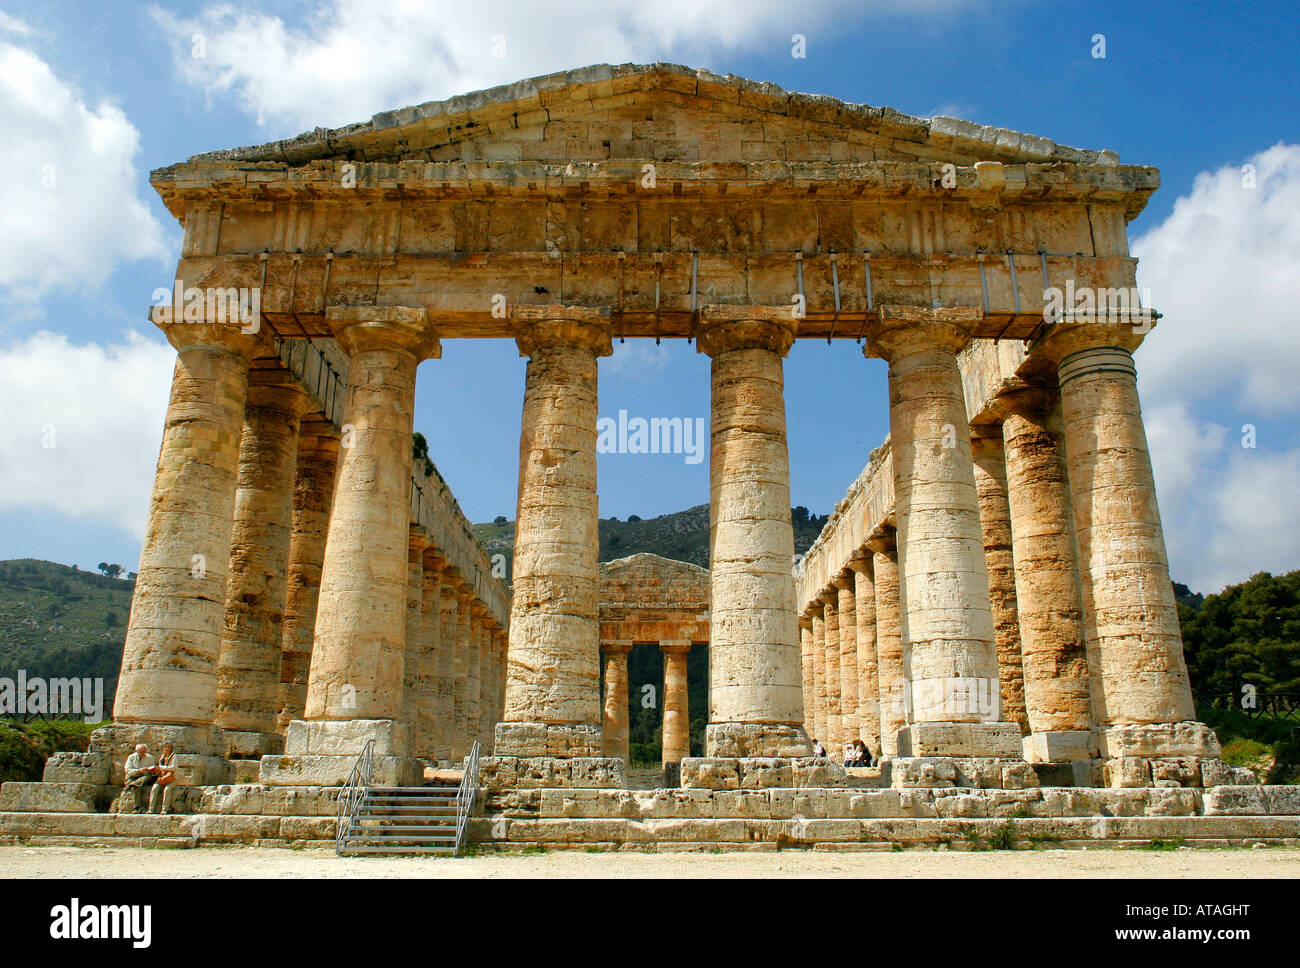 Doric temple at Segesta, Sicily, Italy. - Stock Image